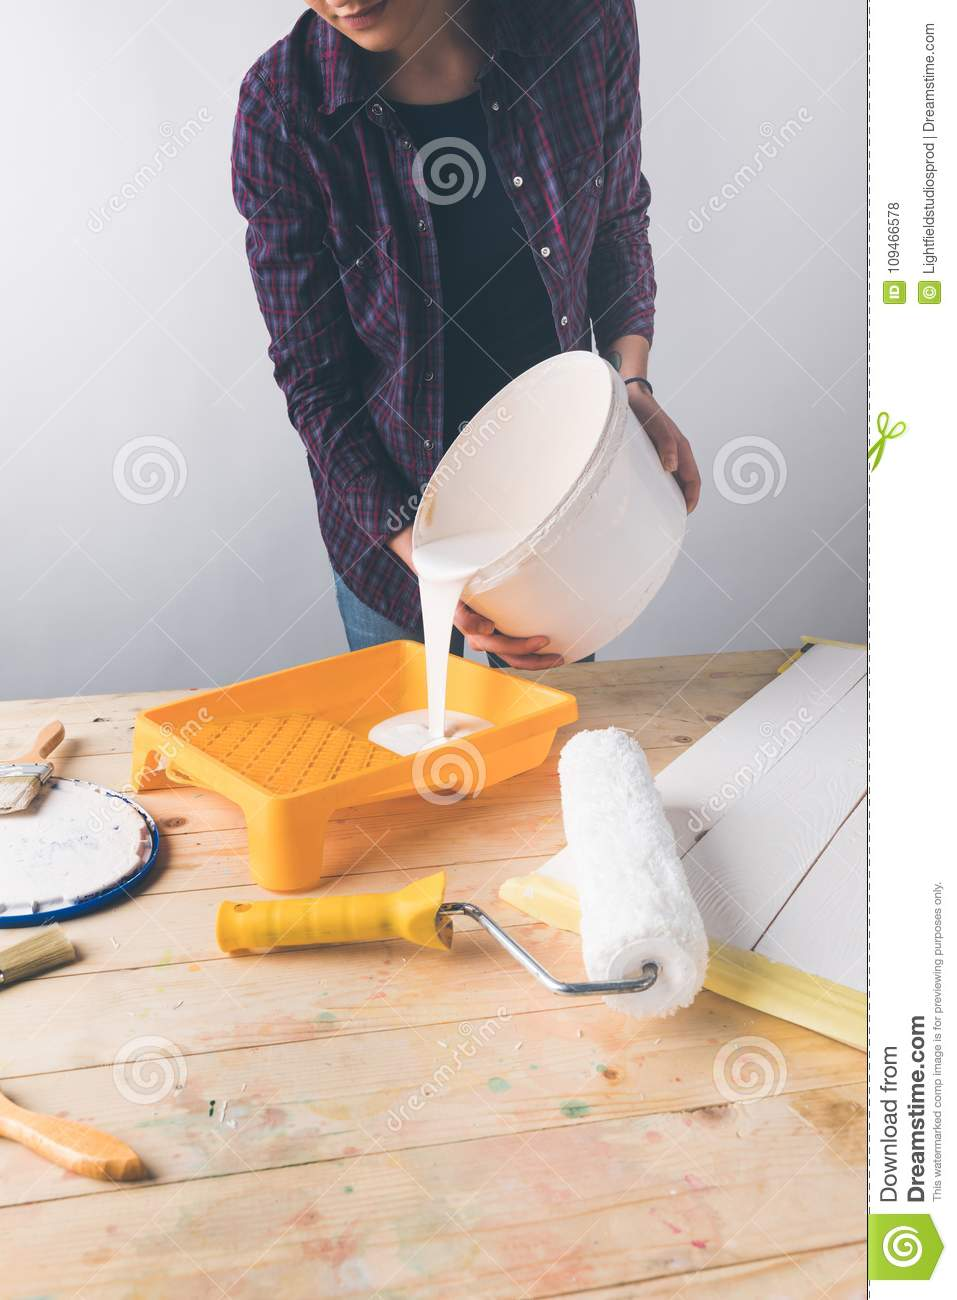 Woman pouring white paint into plastic tray